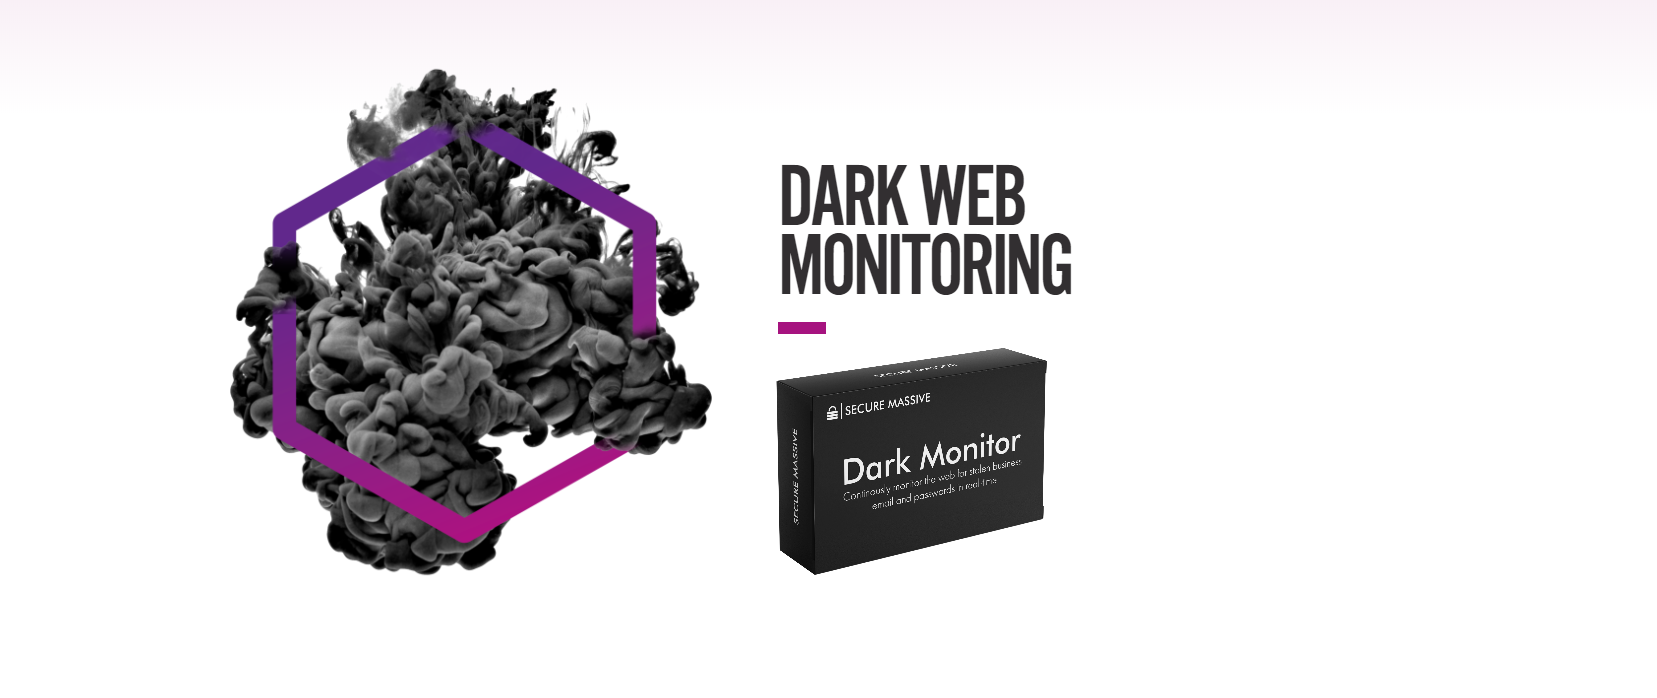 securemassive dark monitor